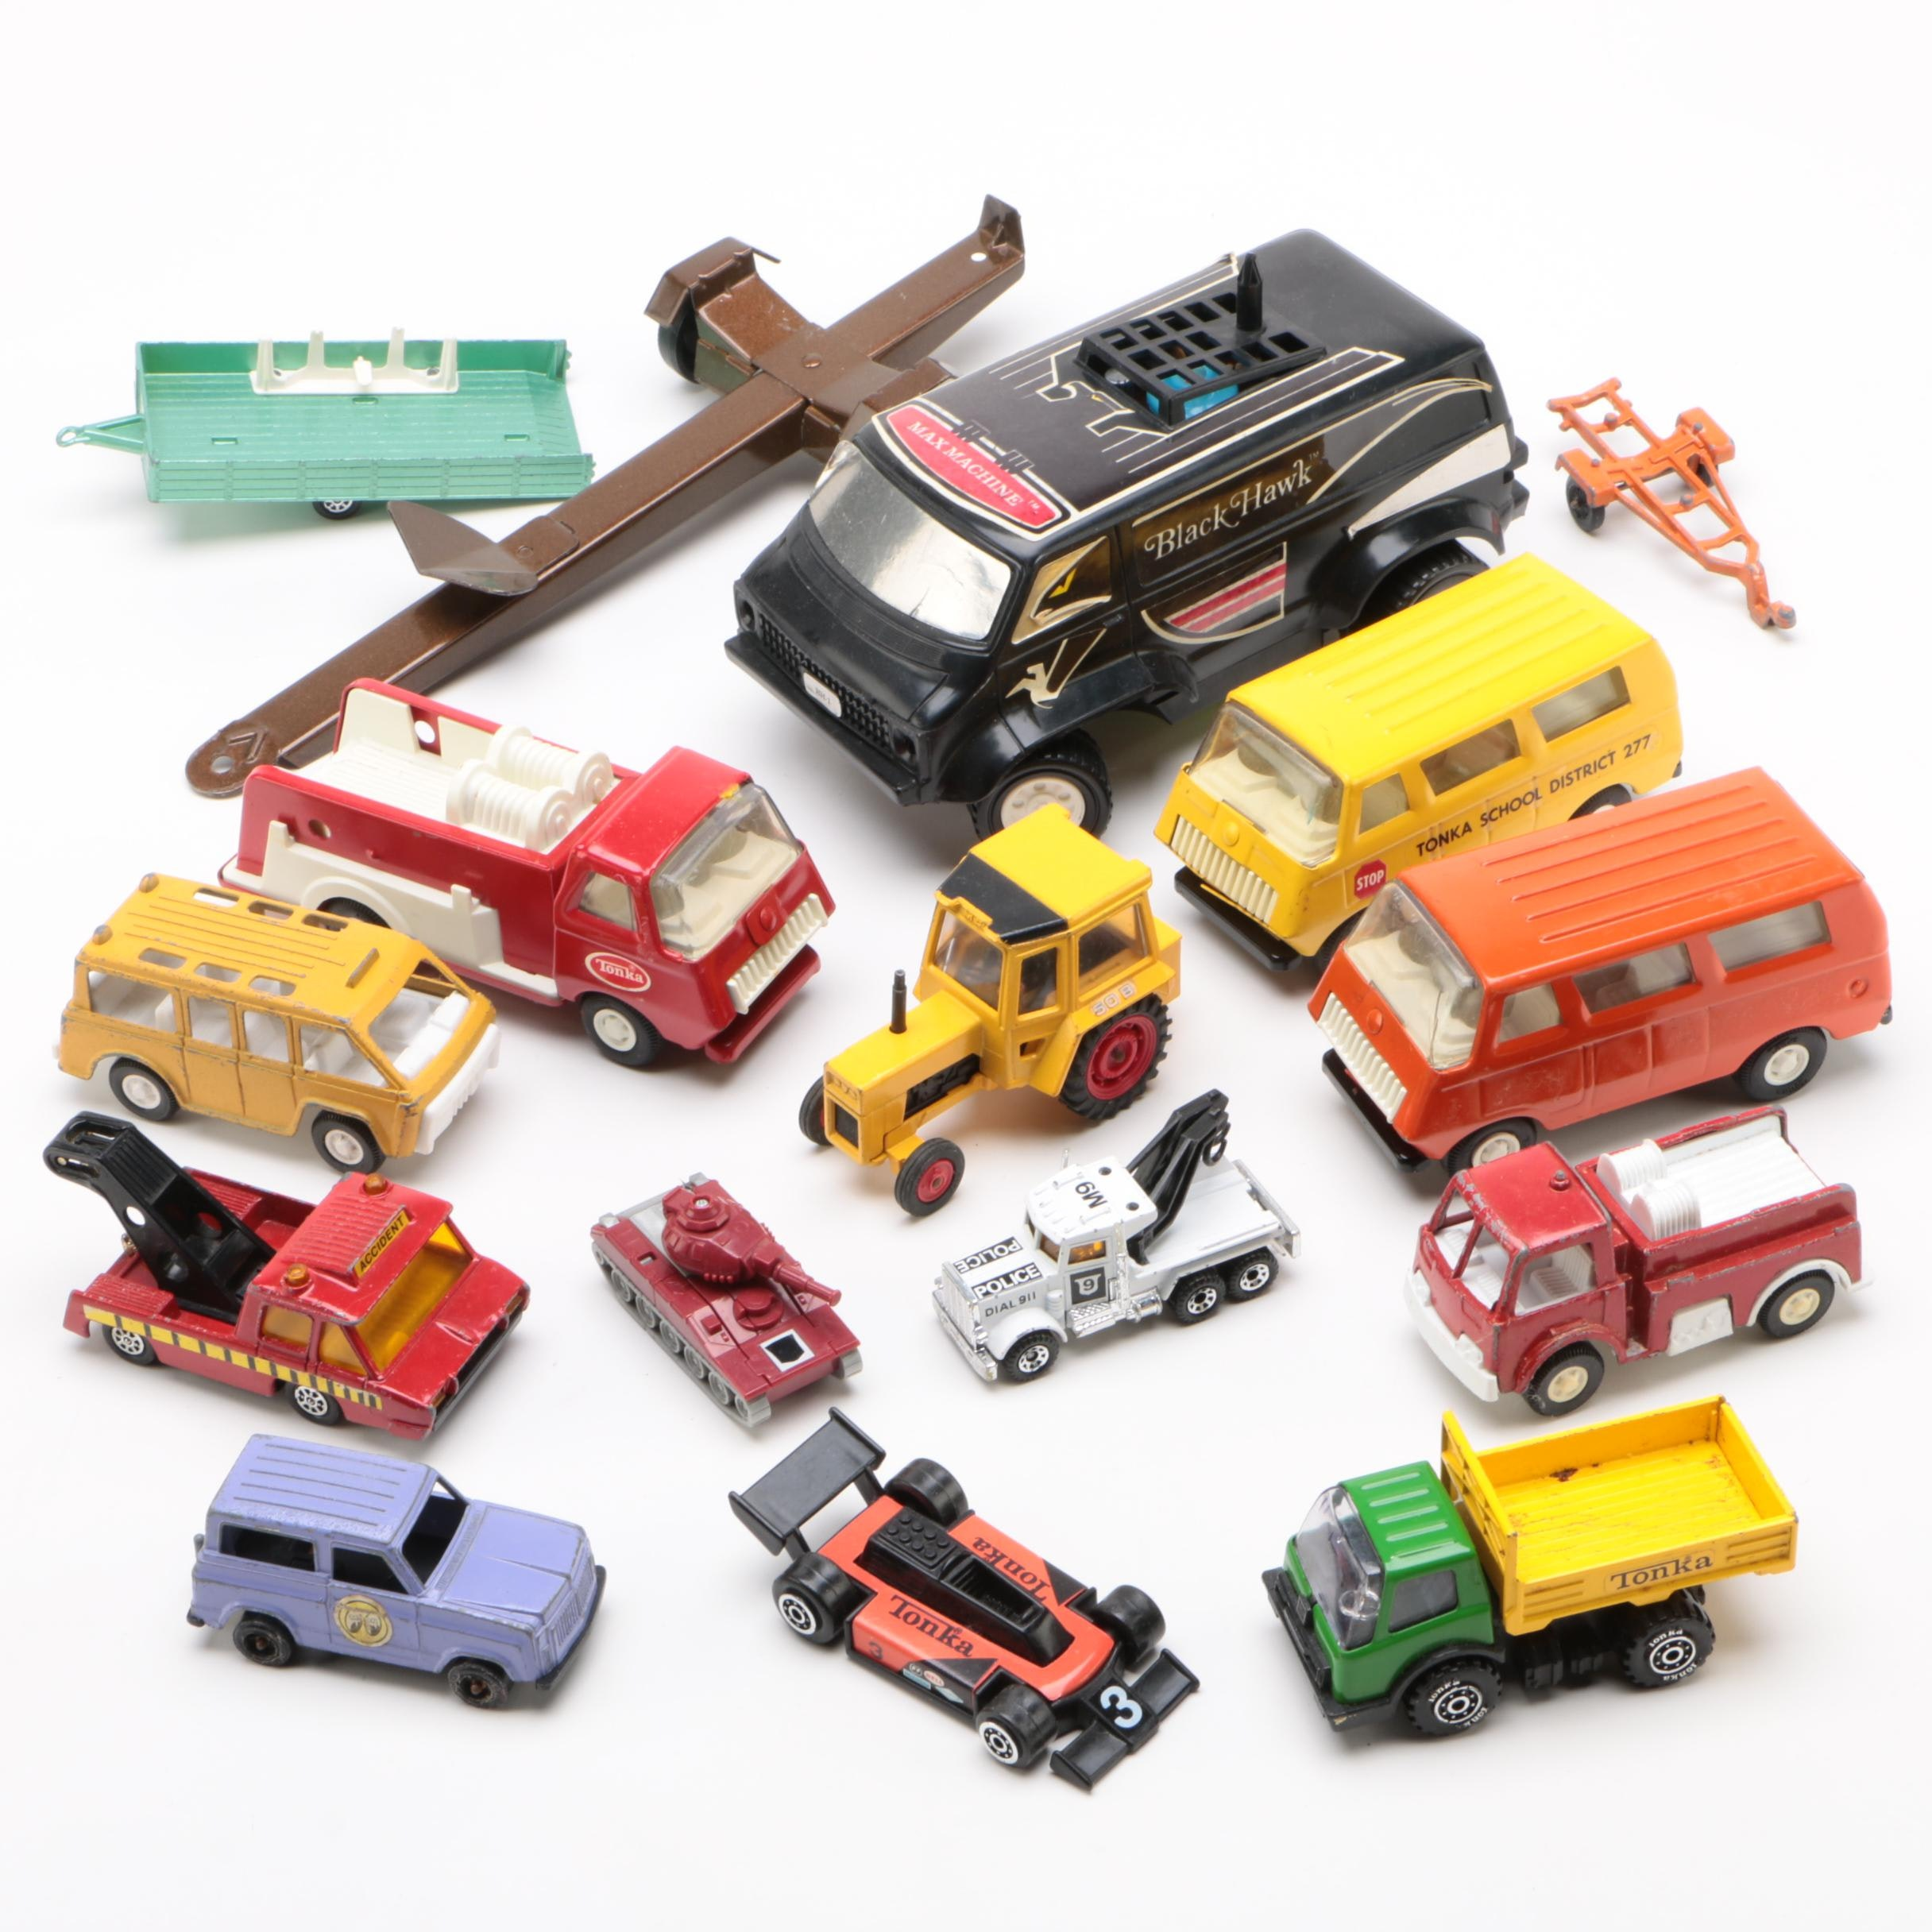 Tonka Toy Trucks and More, 1970s - 1980s